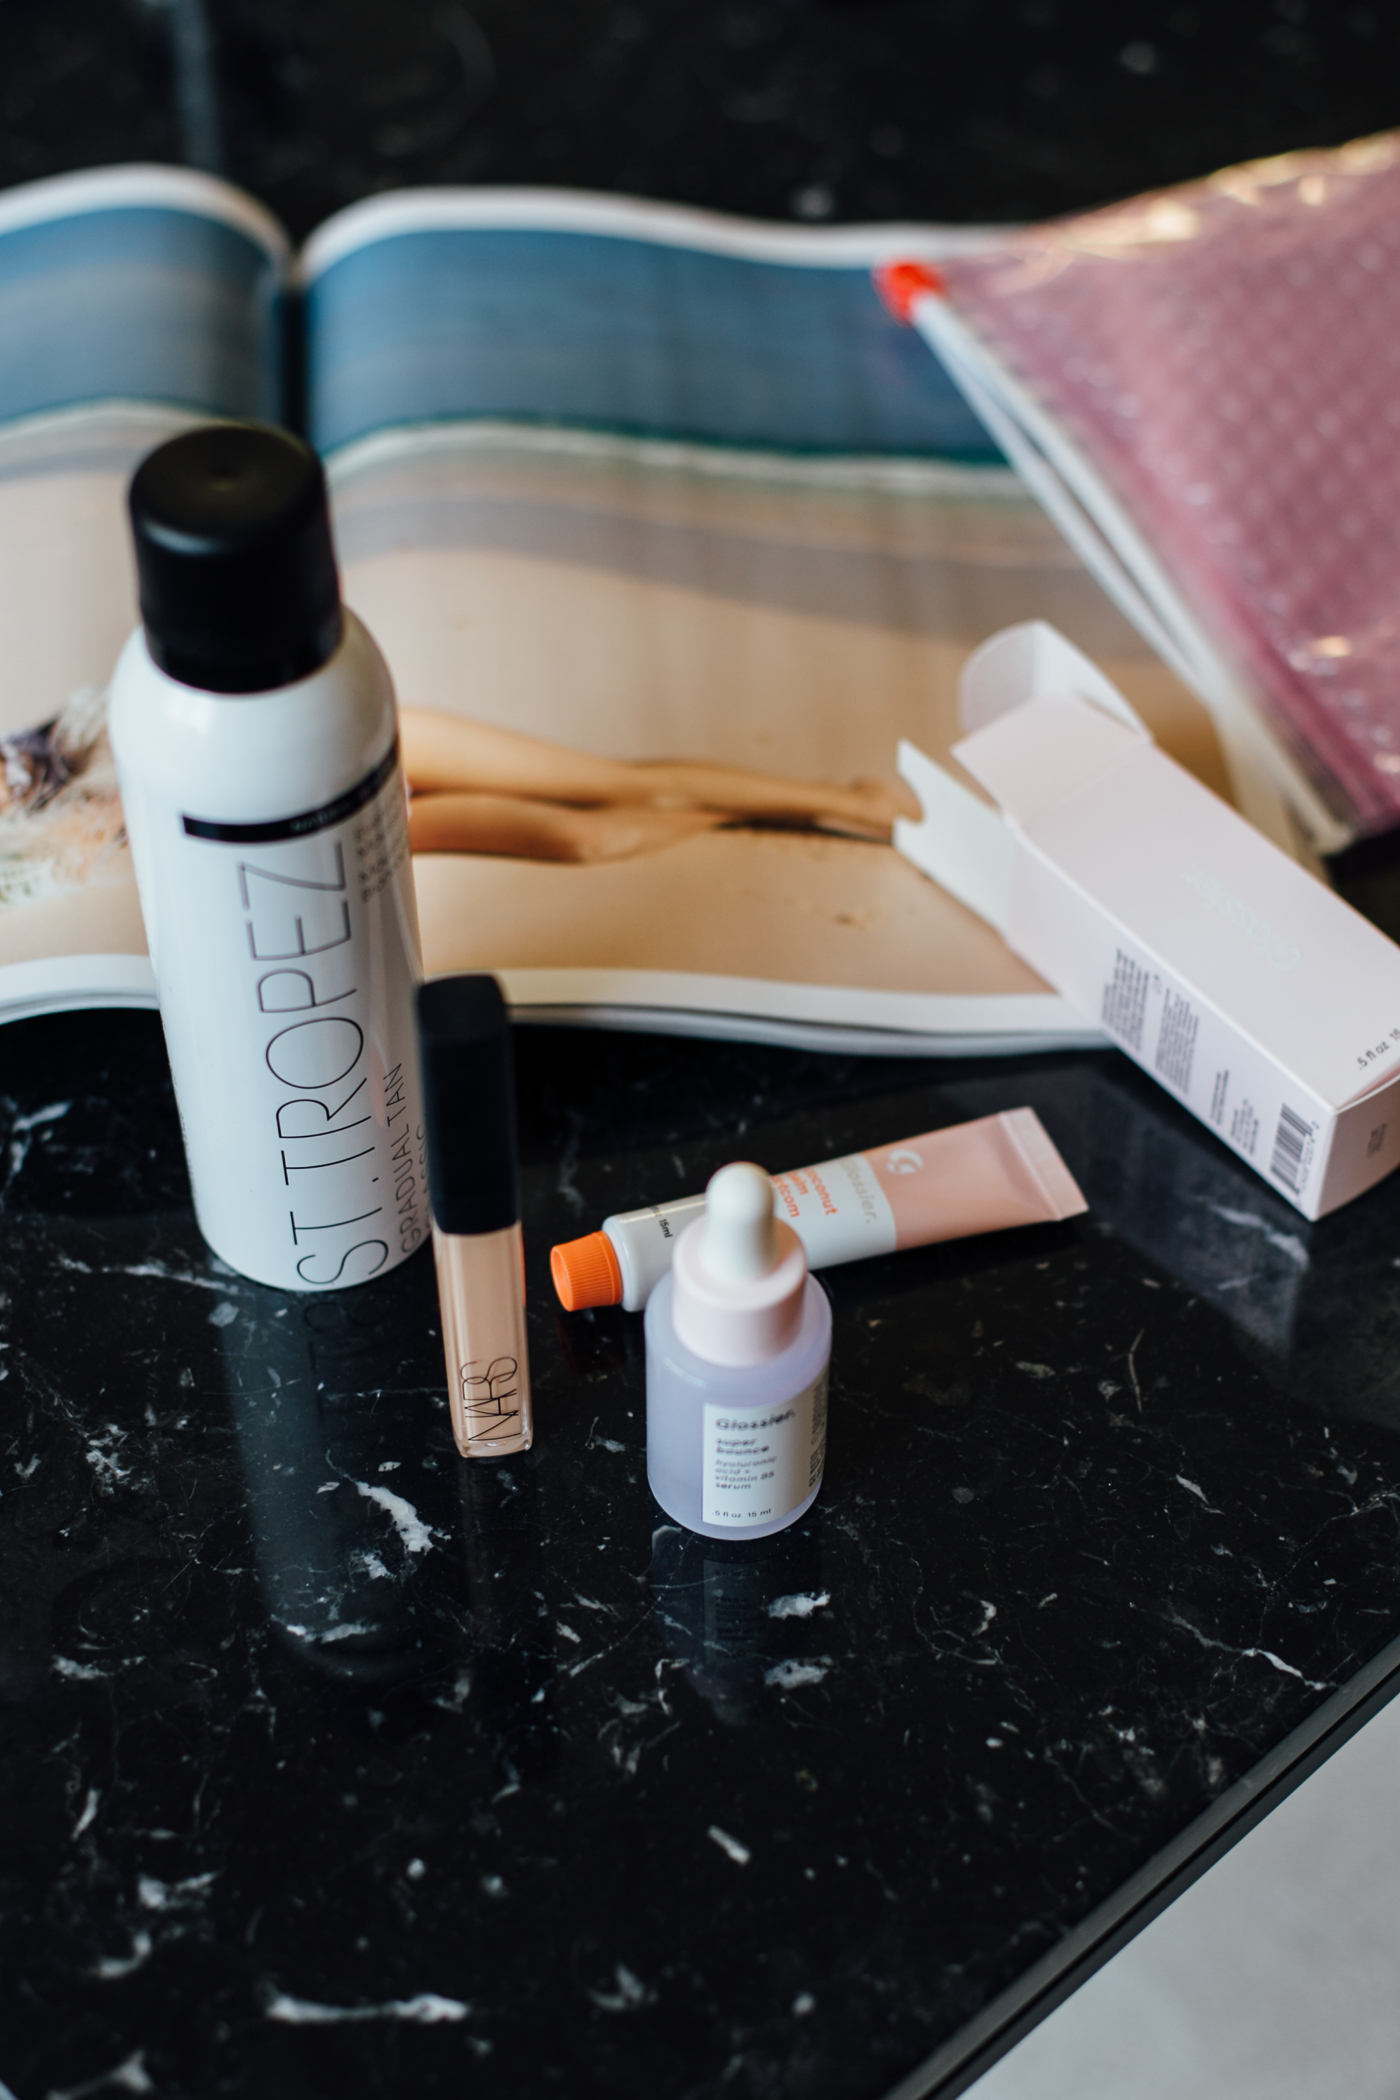 NYC Beauty Buys: Sephora & Glossier Showroom | Bikinis & Passports